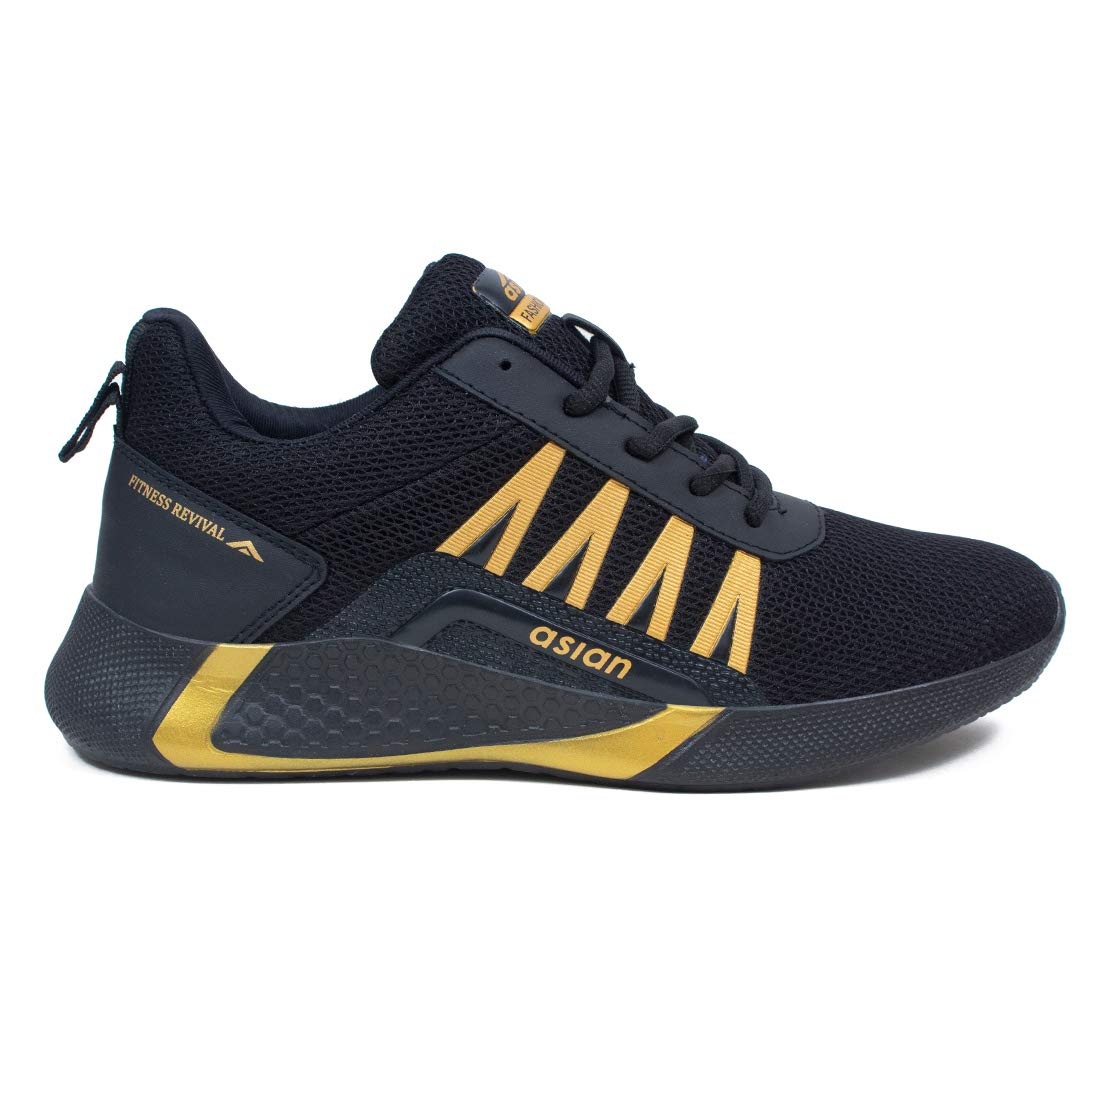 Asian Bouncer-01 Stylish Sneakers